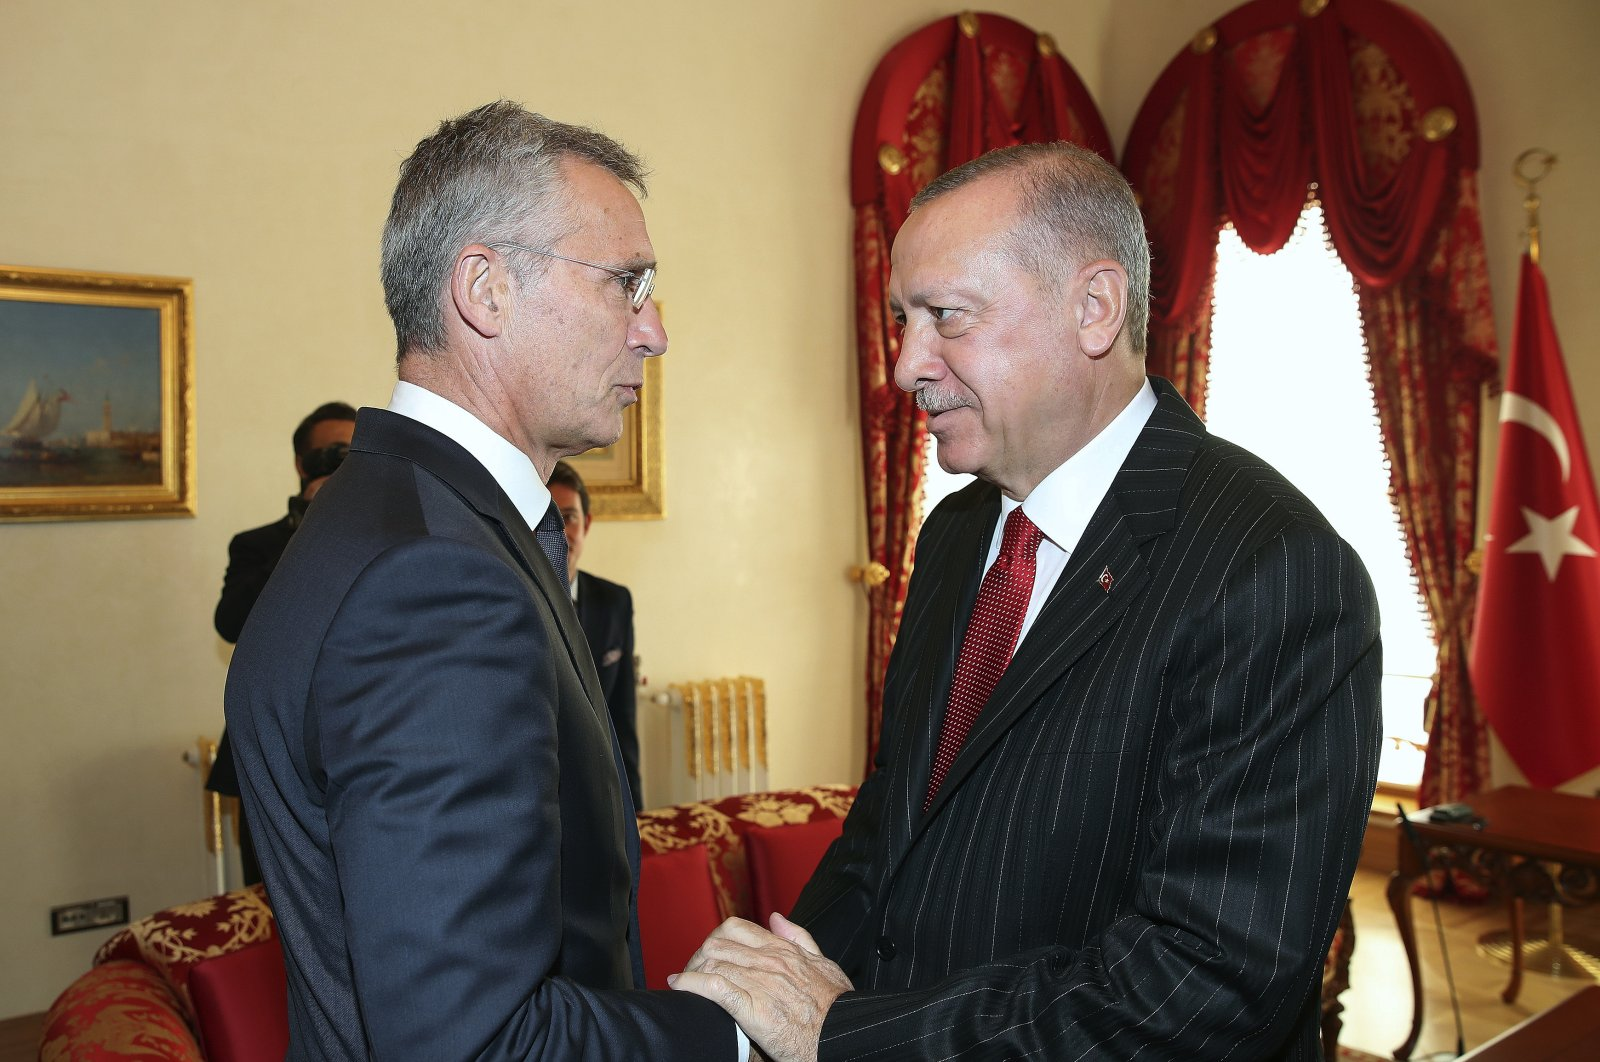 NATO Secretary General Jens Stoltenberg, left, with Turkey's President Recep Tayyip Erdogan before a meeting, in Istanbul, Friday, Oct. 11, 2019. (AP Photo)